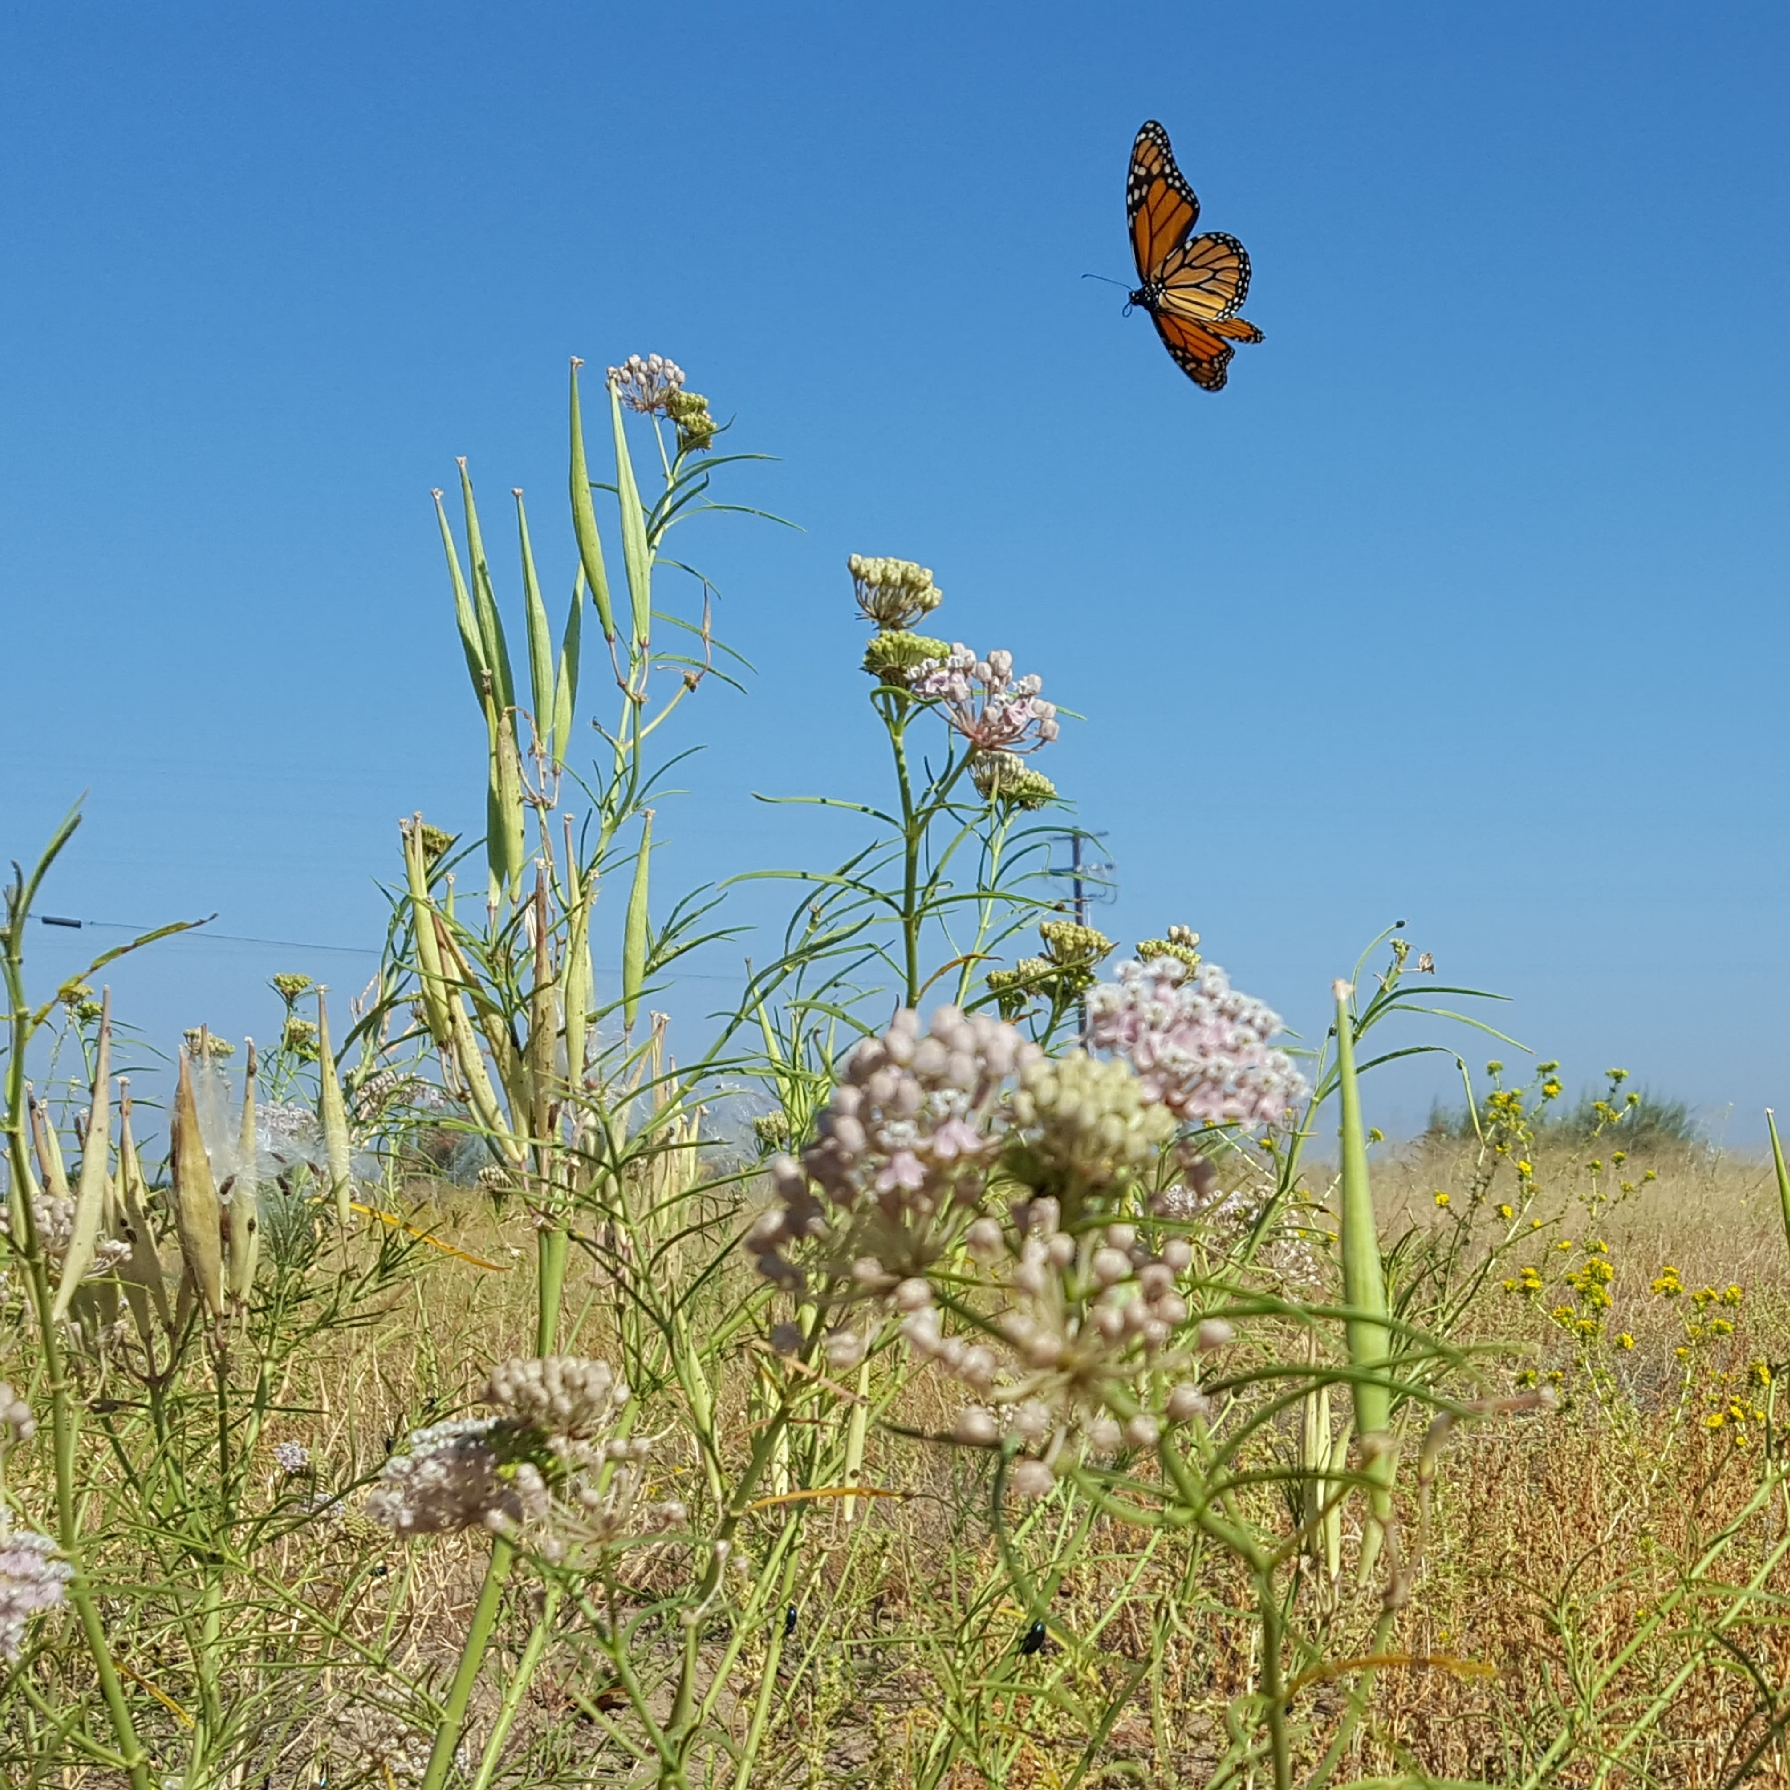 A bright orange and black monarch butterfly soars against a deep blue sky, above a dry grassland with some green milkweed plants.